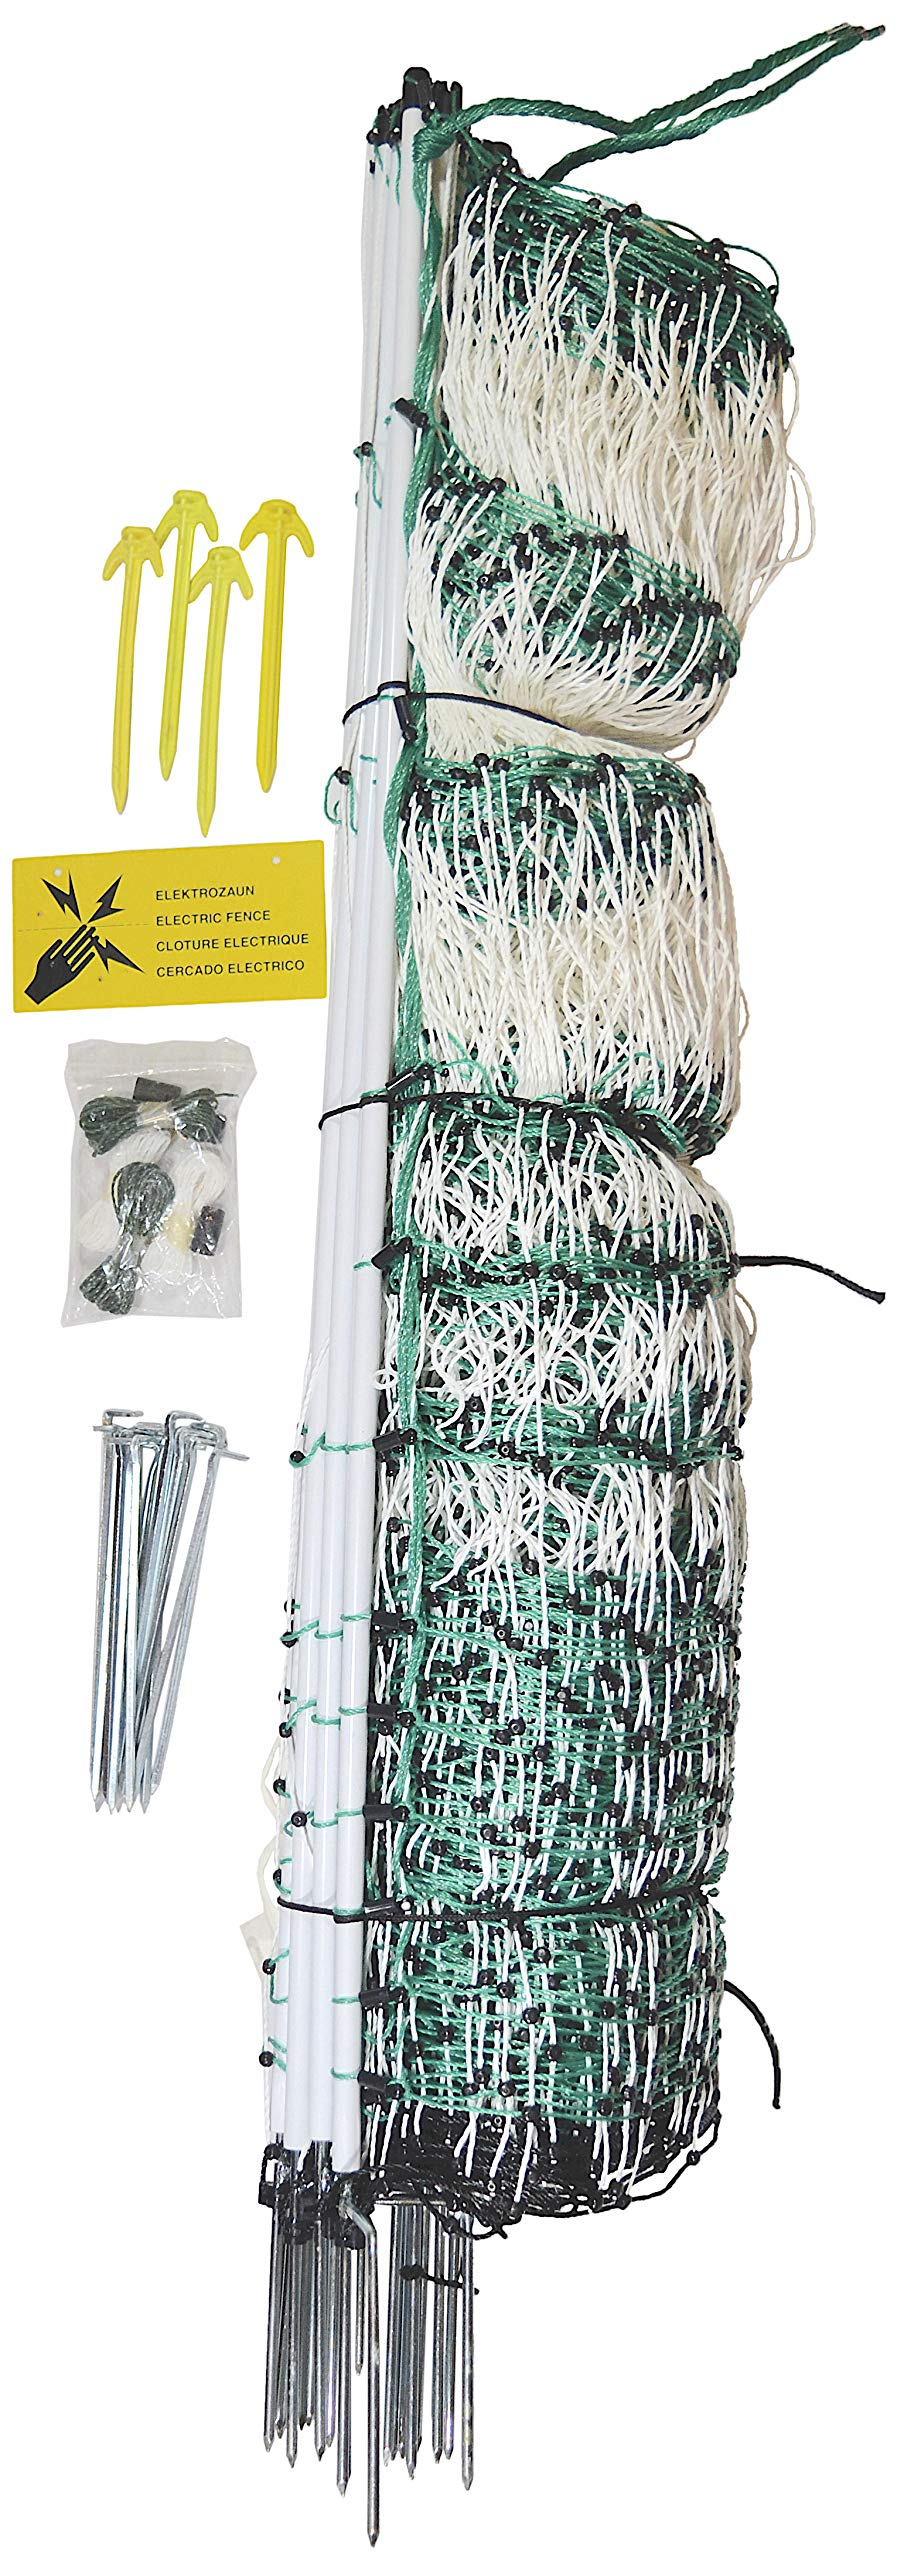 RentACoop Poultry Netting Electric Fence (48'' H x 164' L) by RentACoop